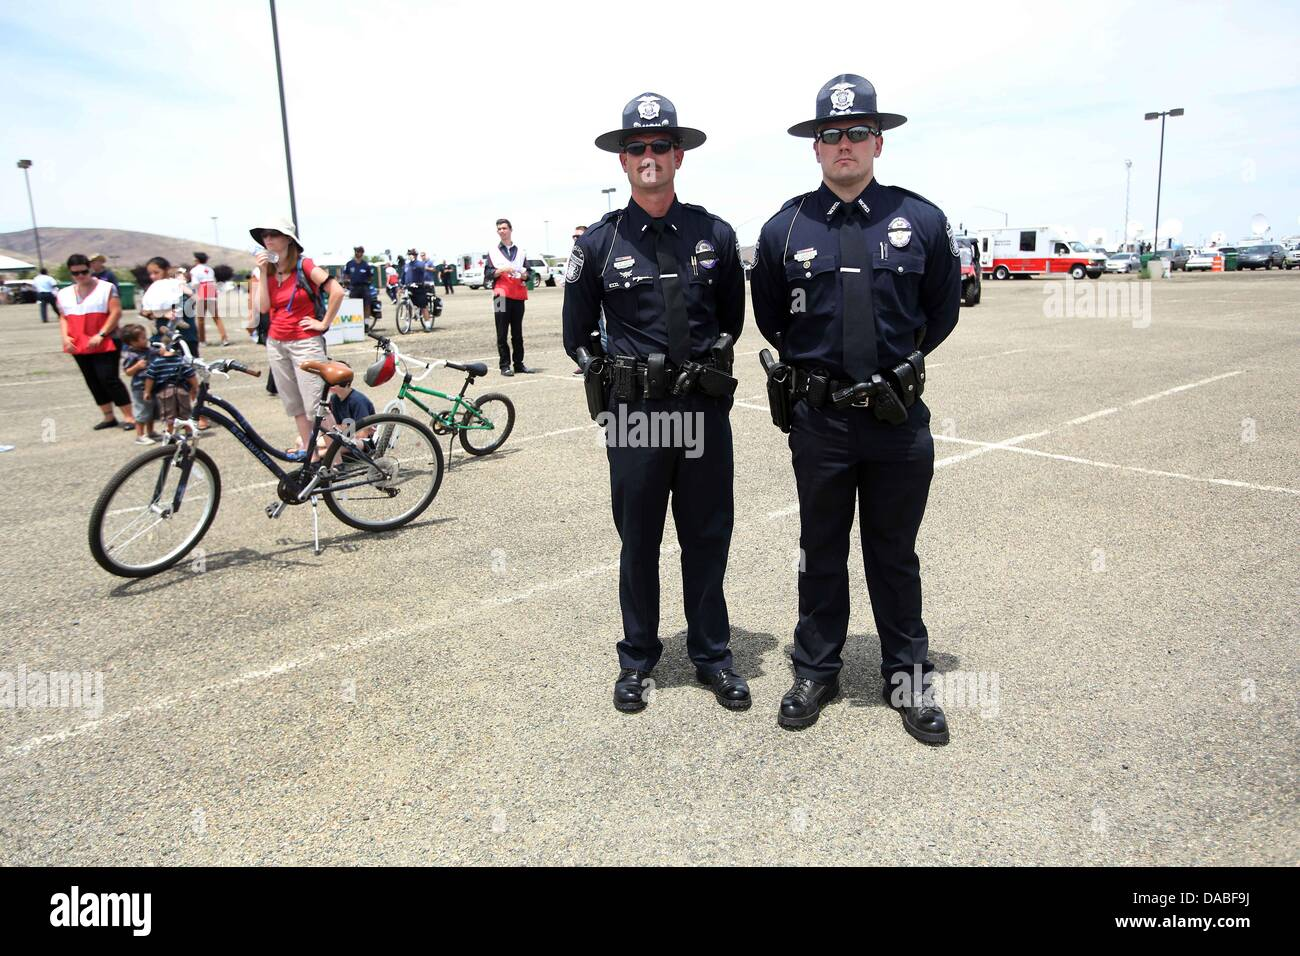 K w arend and a shipley of the winslow police stand outside of tim s toyota center in prescott arizona the 19 granite mountain hotshots killed in